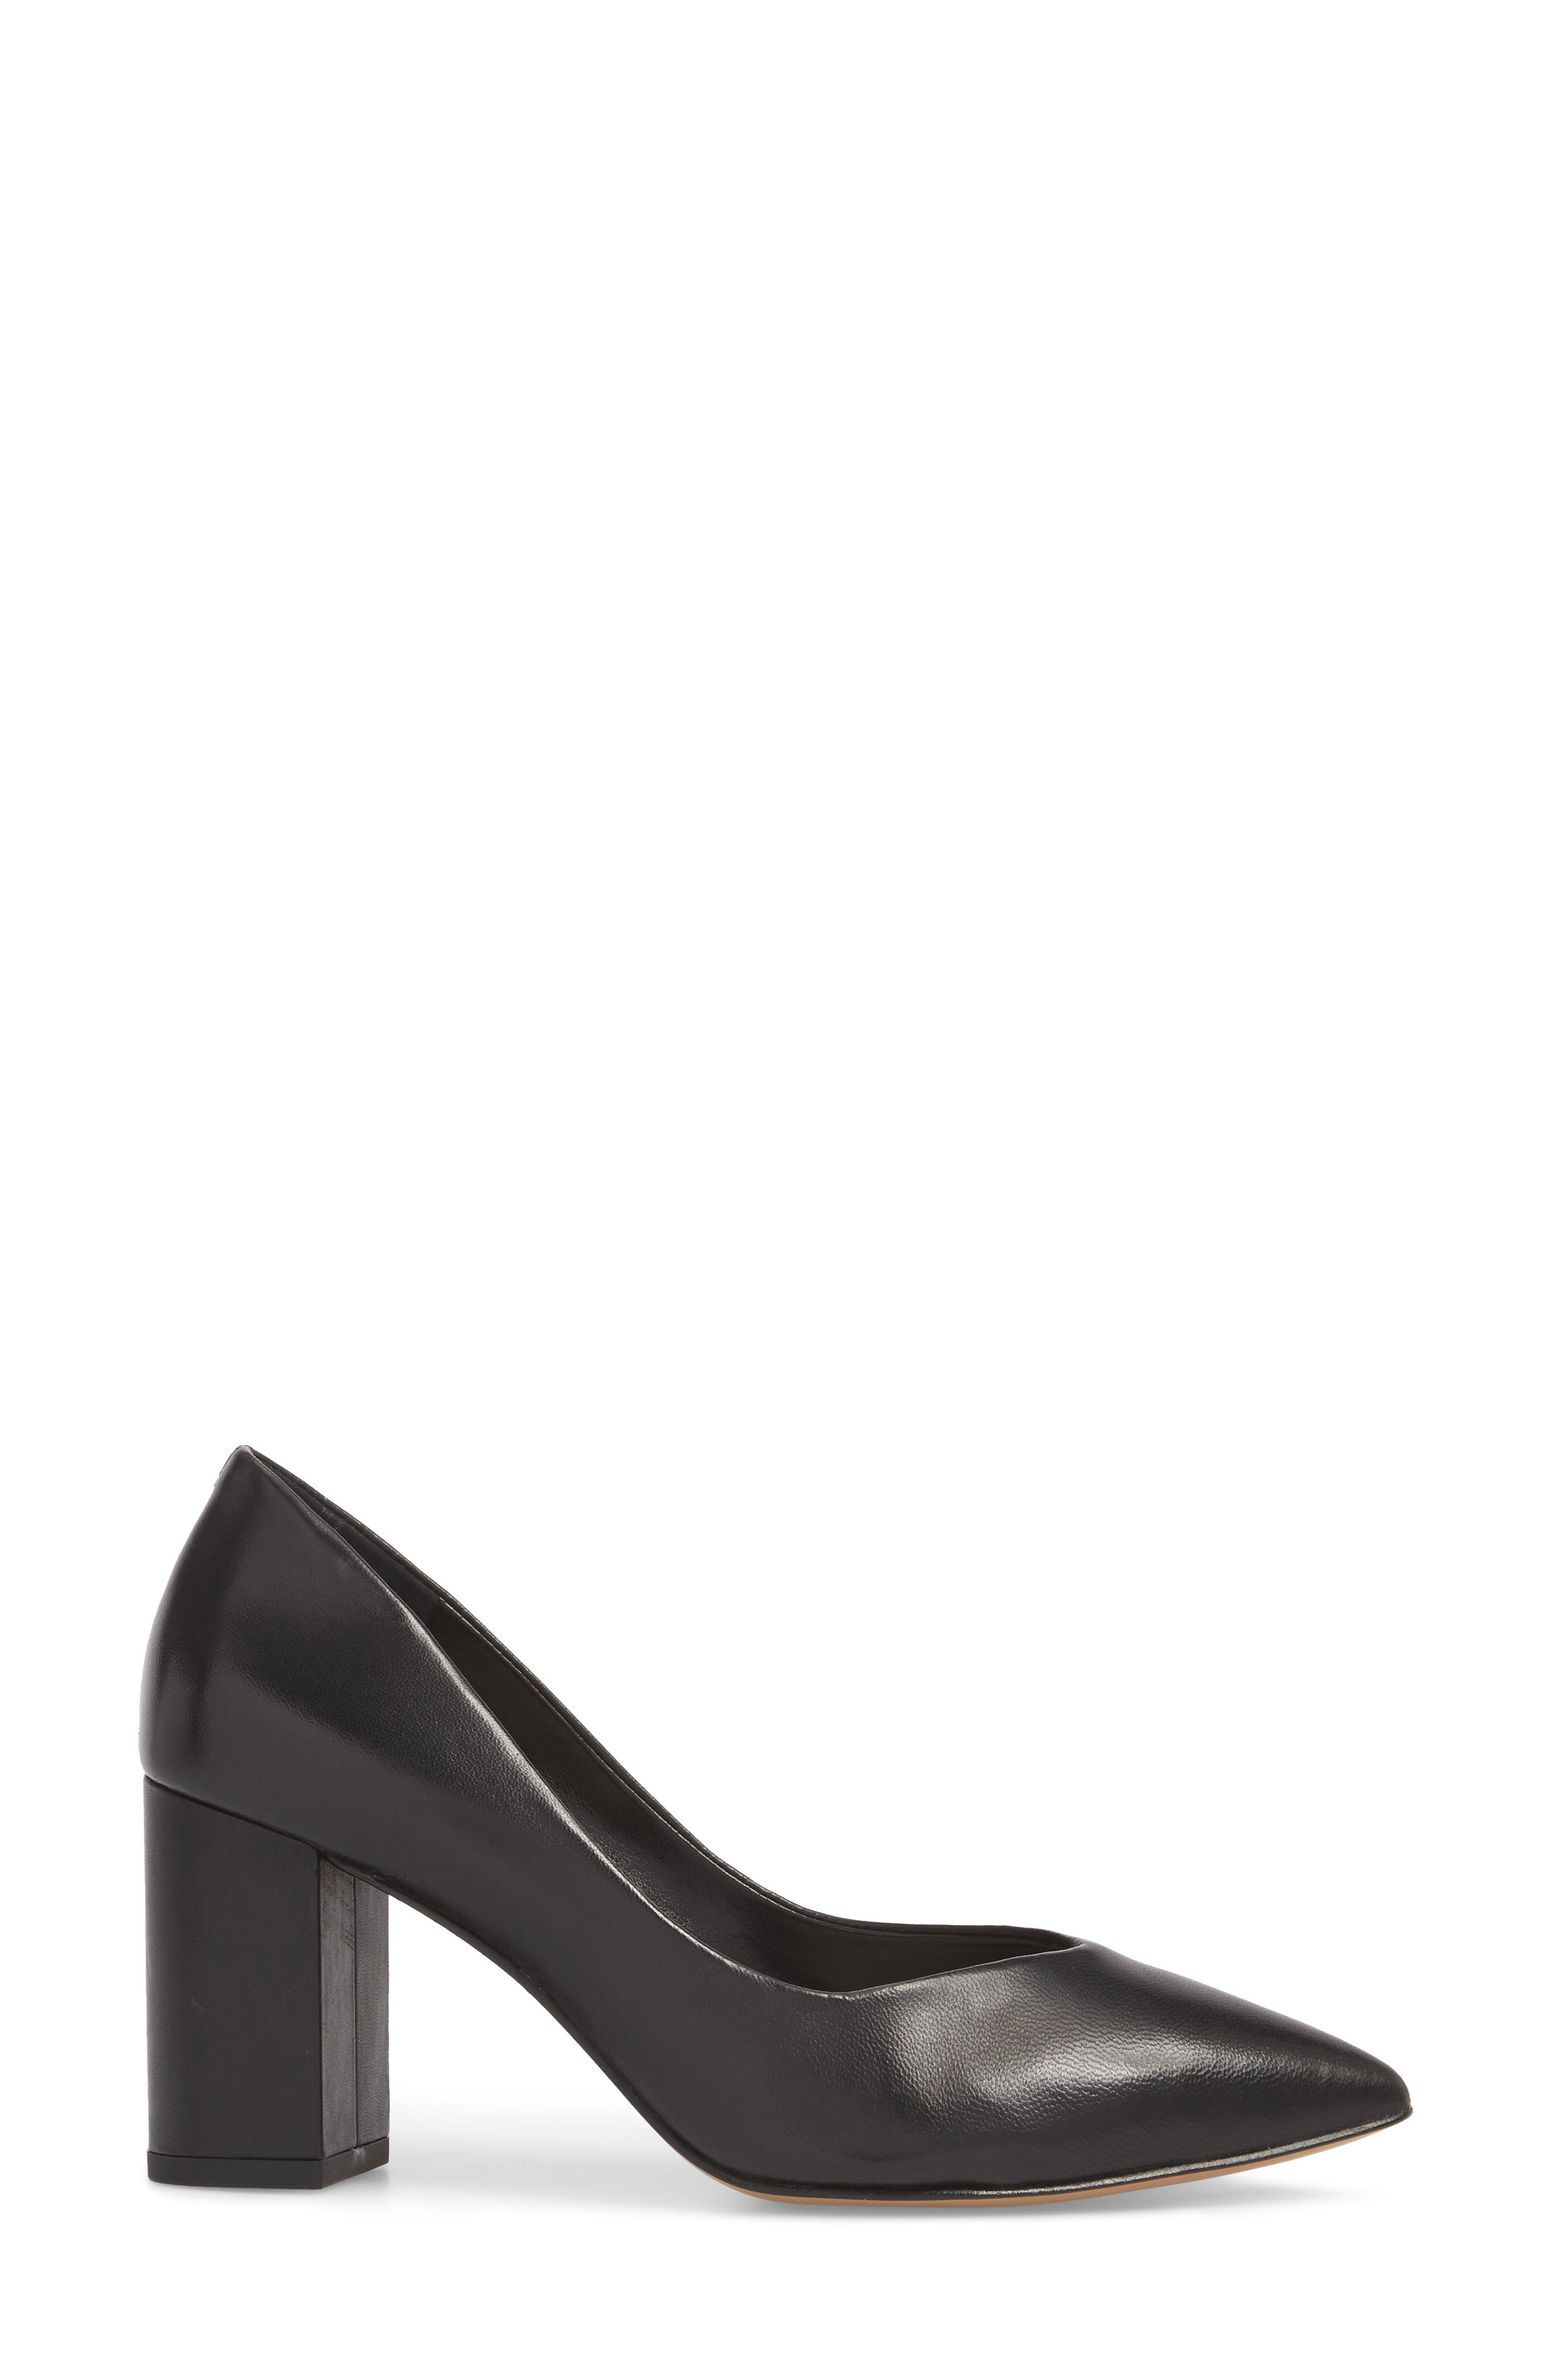 1.STATE, Saffy Block Heel Pump, Alternate thumbnail 3, color, BLACK LEATHER